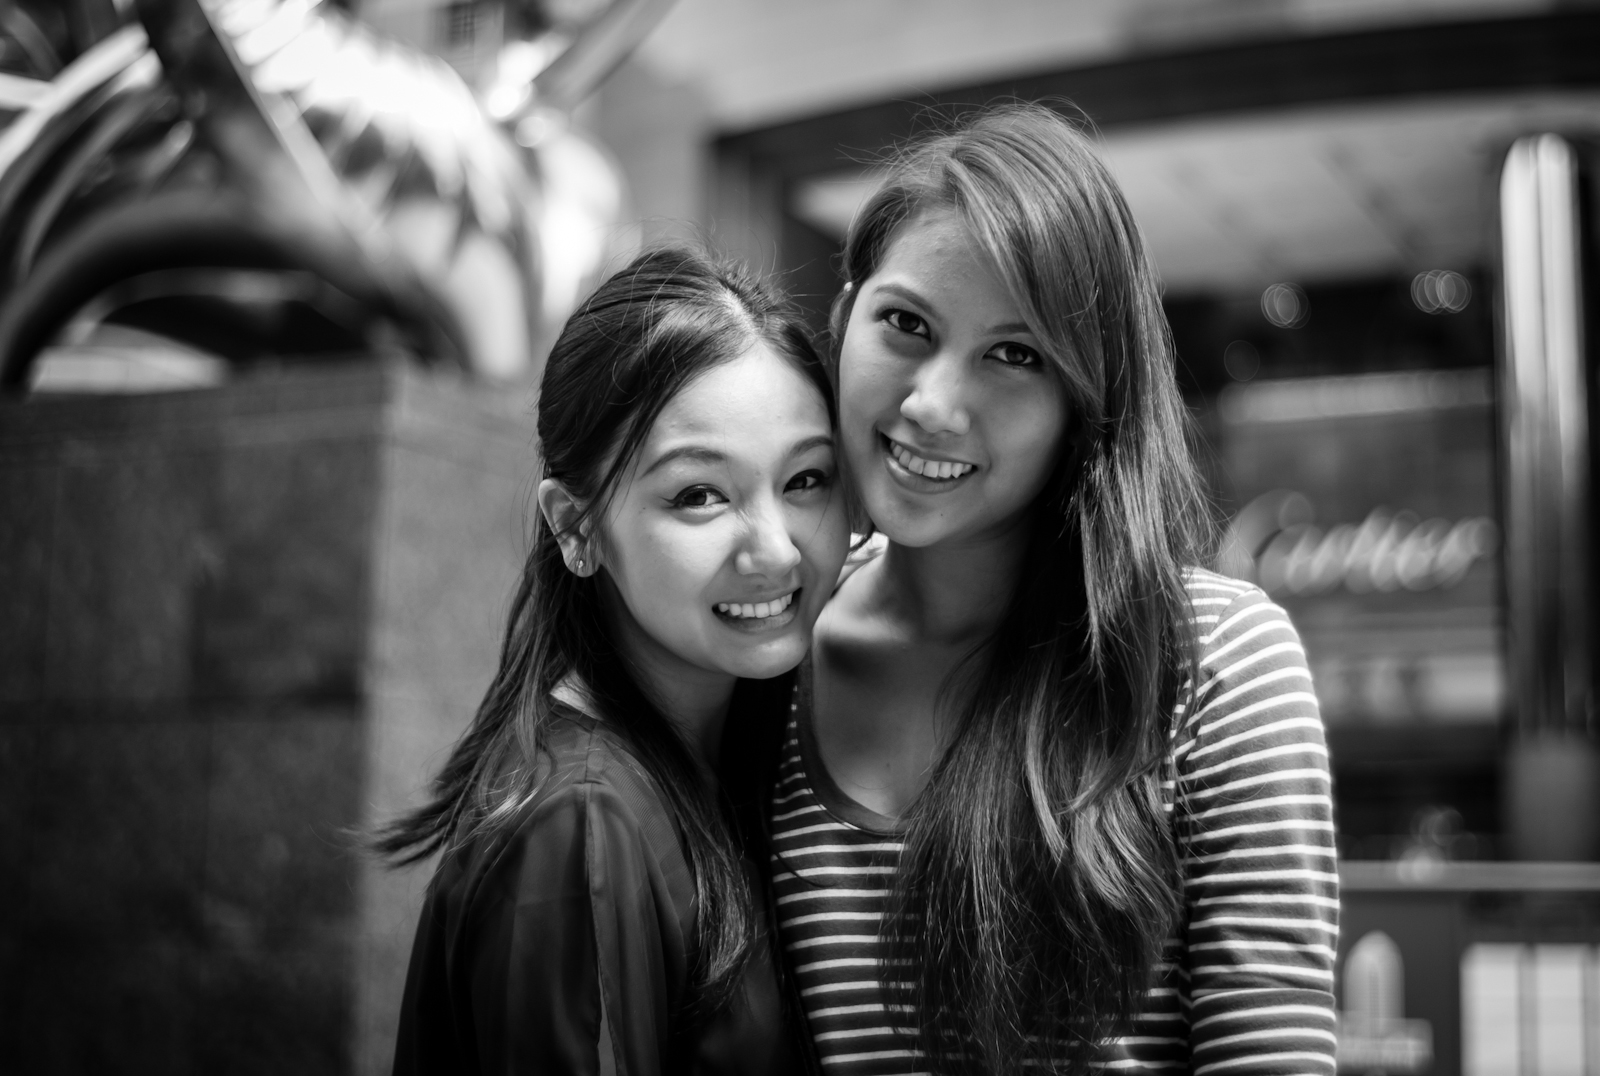 Street photography - Two women in Orchard Road